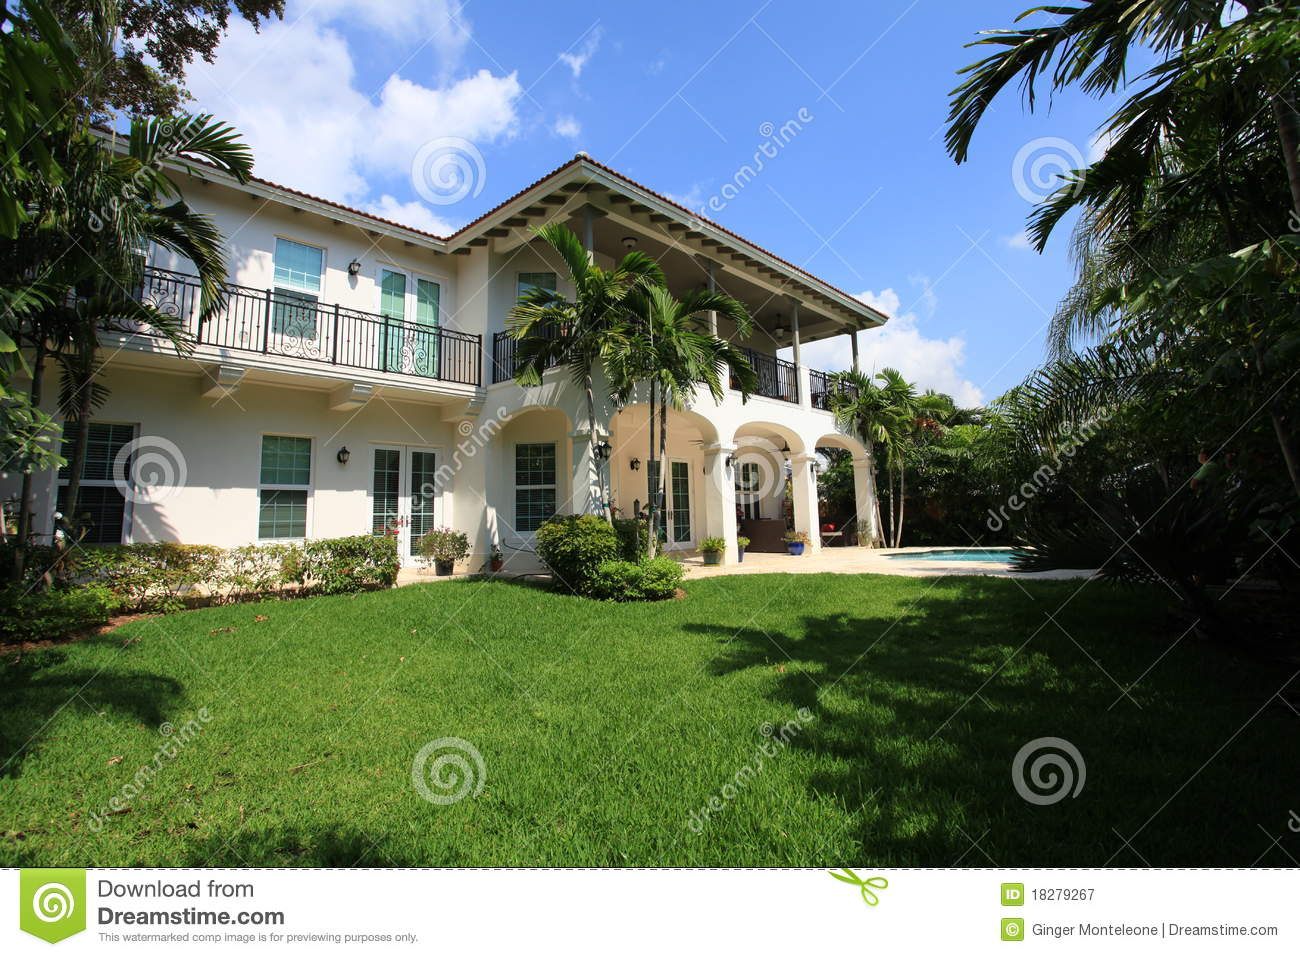 Luxury pool home royalty free stock photography image for Free luxury home images